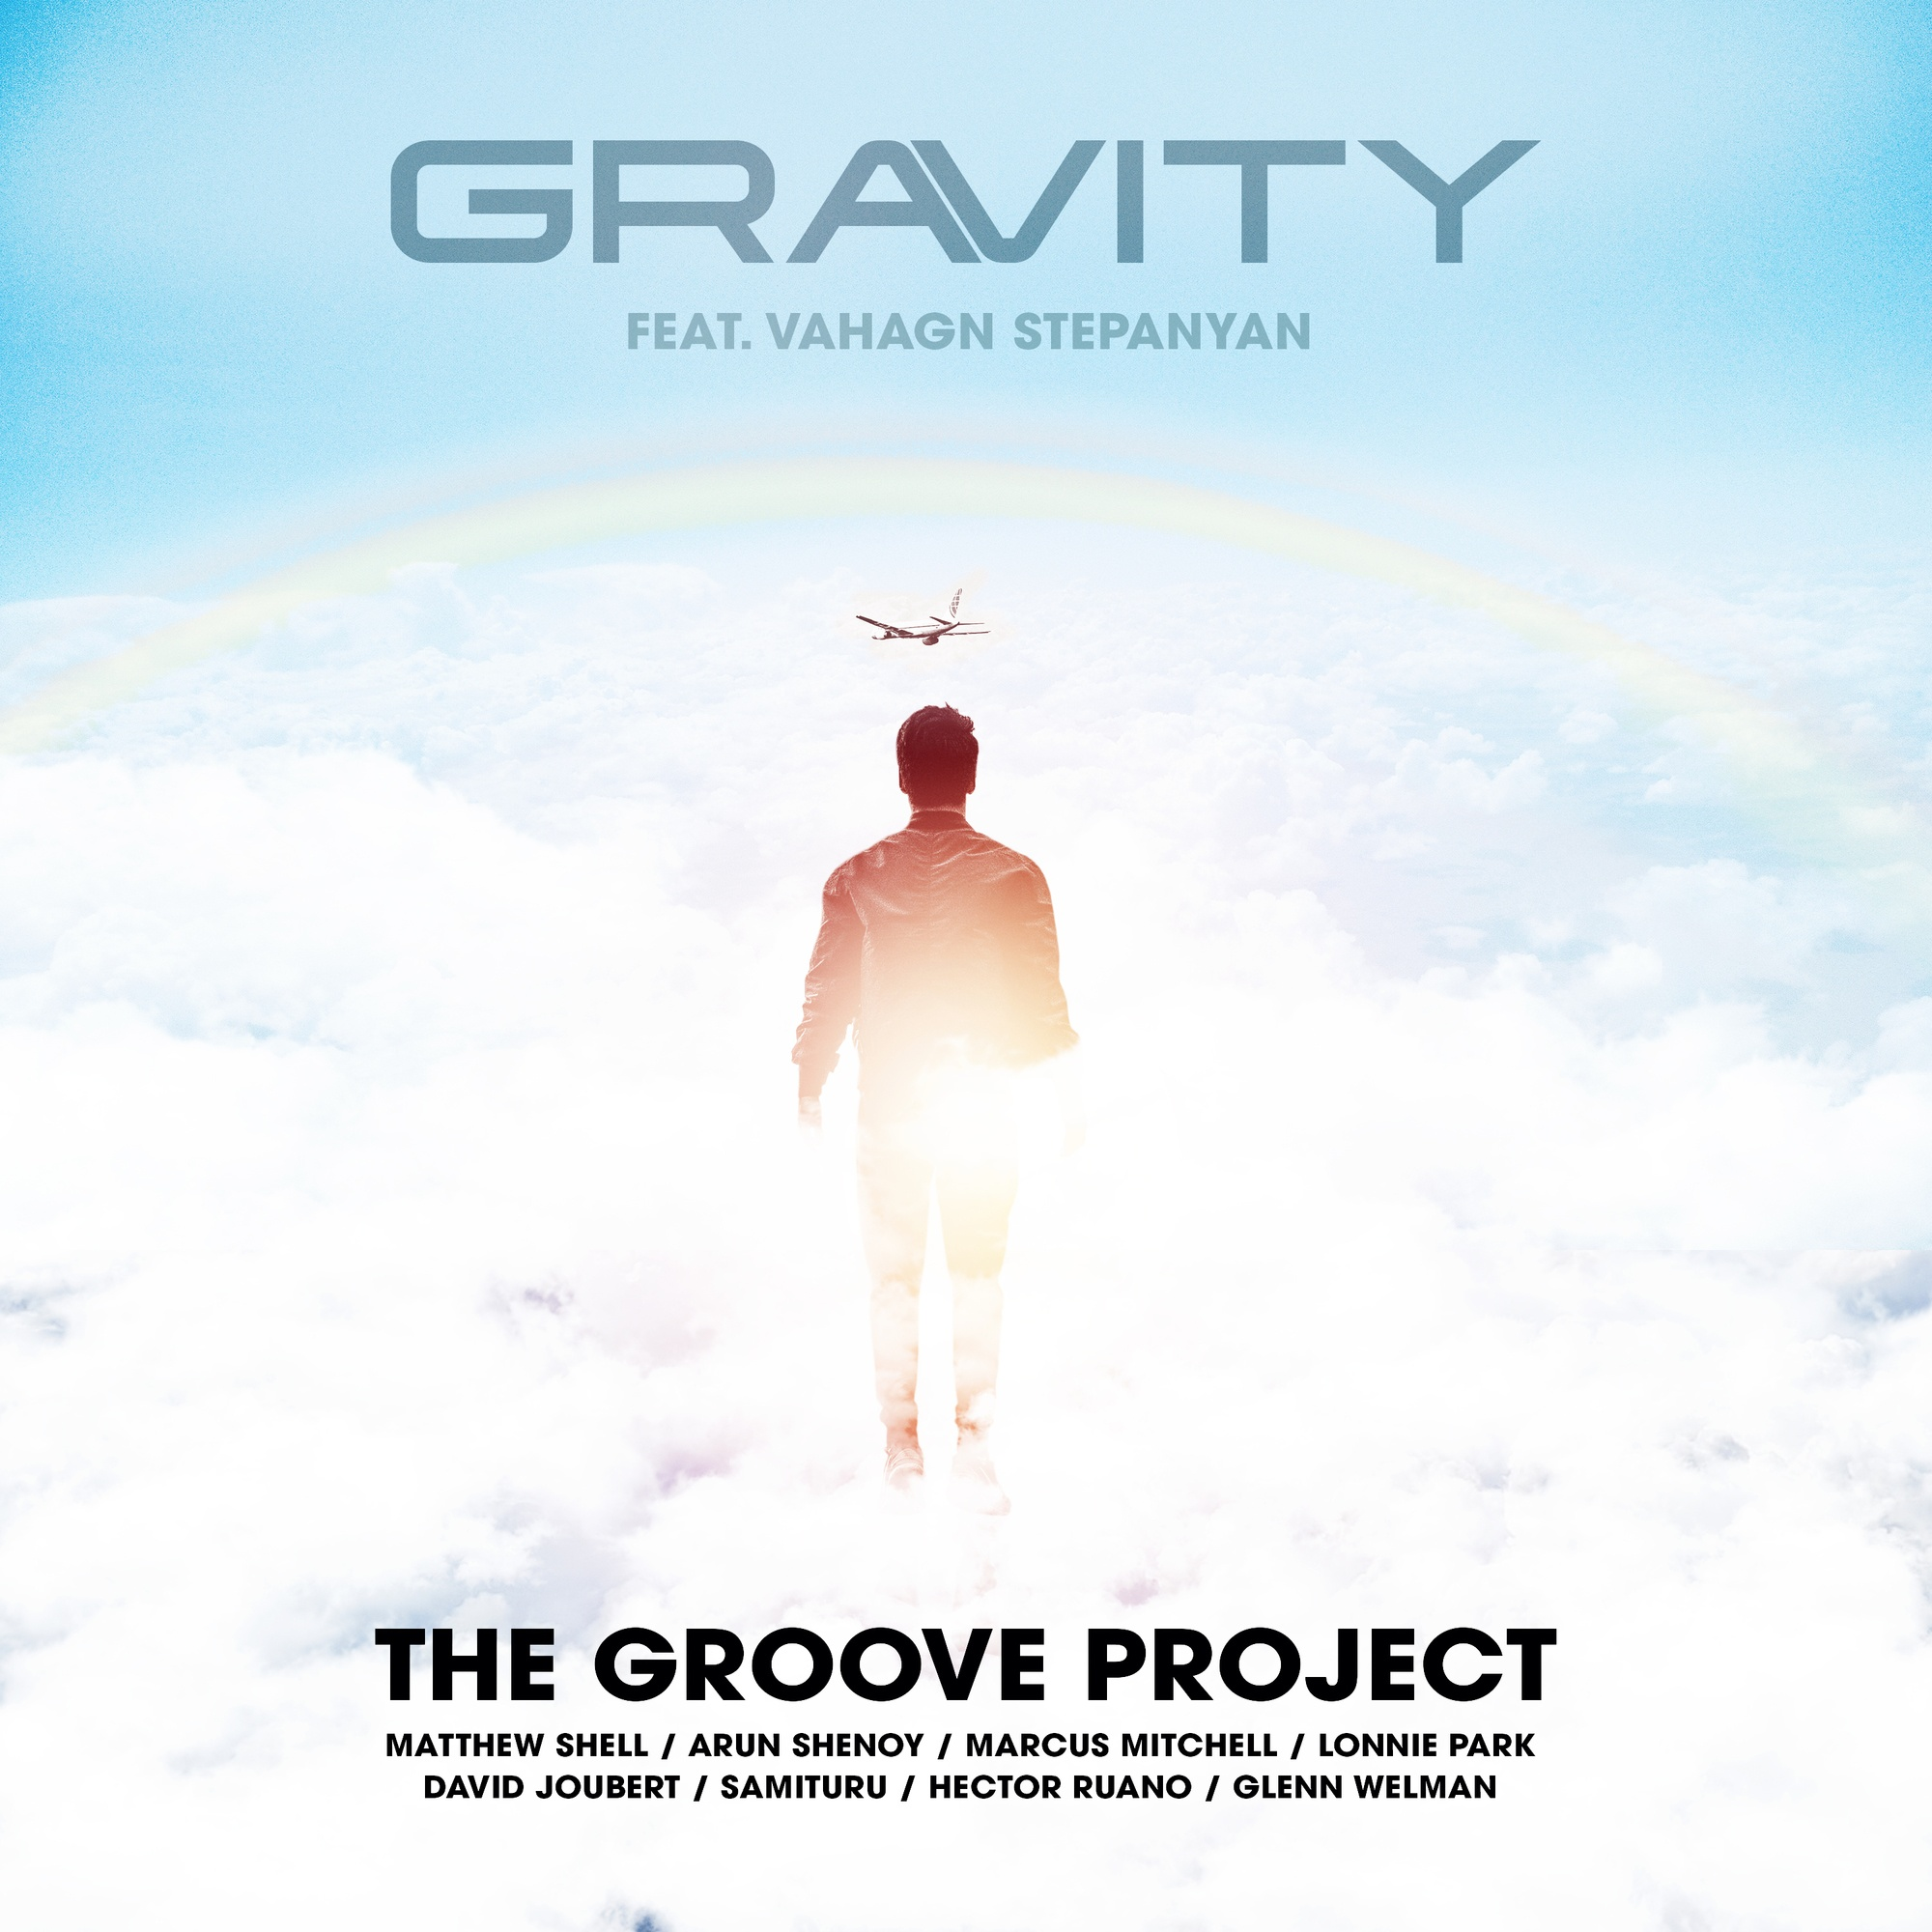 04. Gravity (feat. Vahagn Stepanyan)